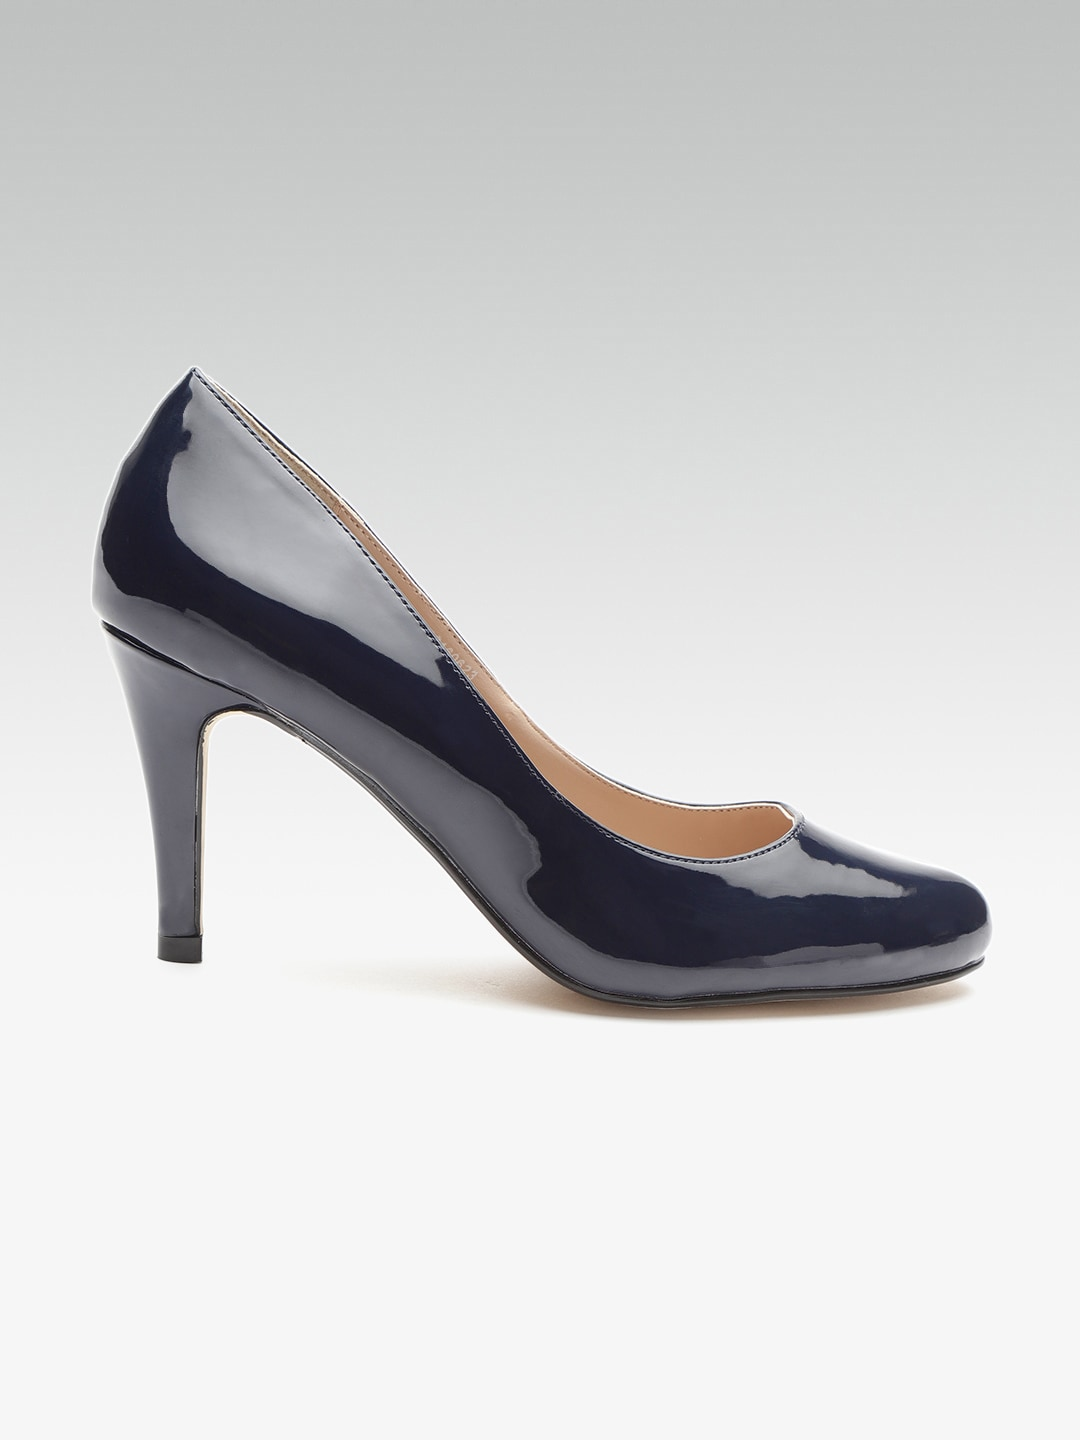 59bad4f20b6 Navy Blue Heels - Buy Navy Blue Heels online in India